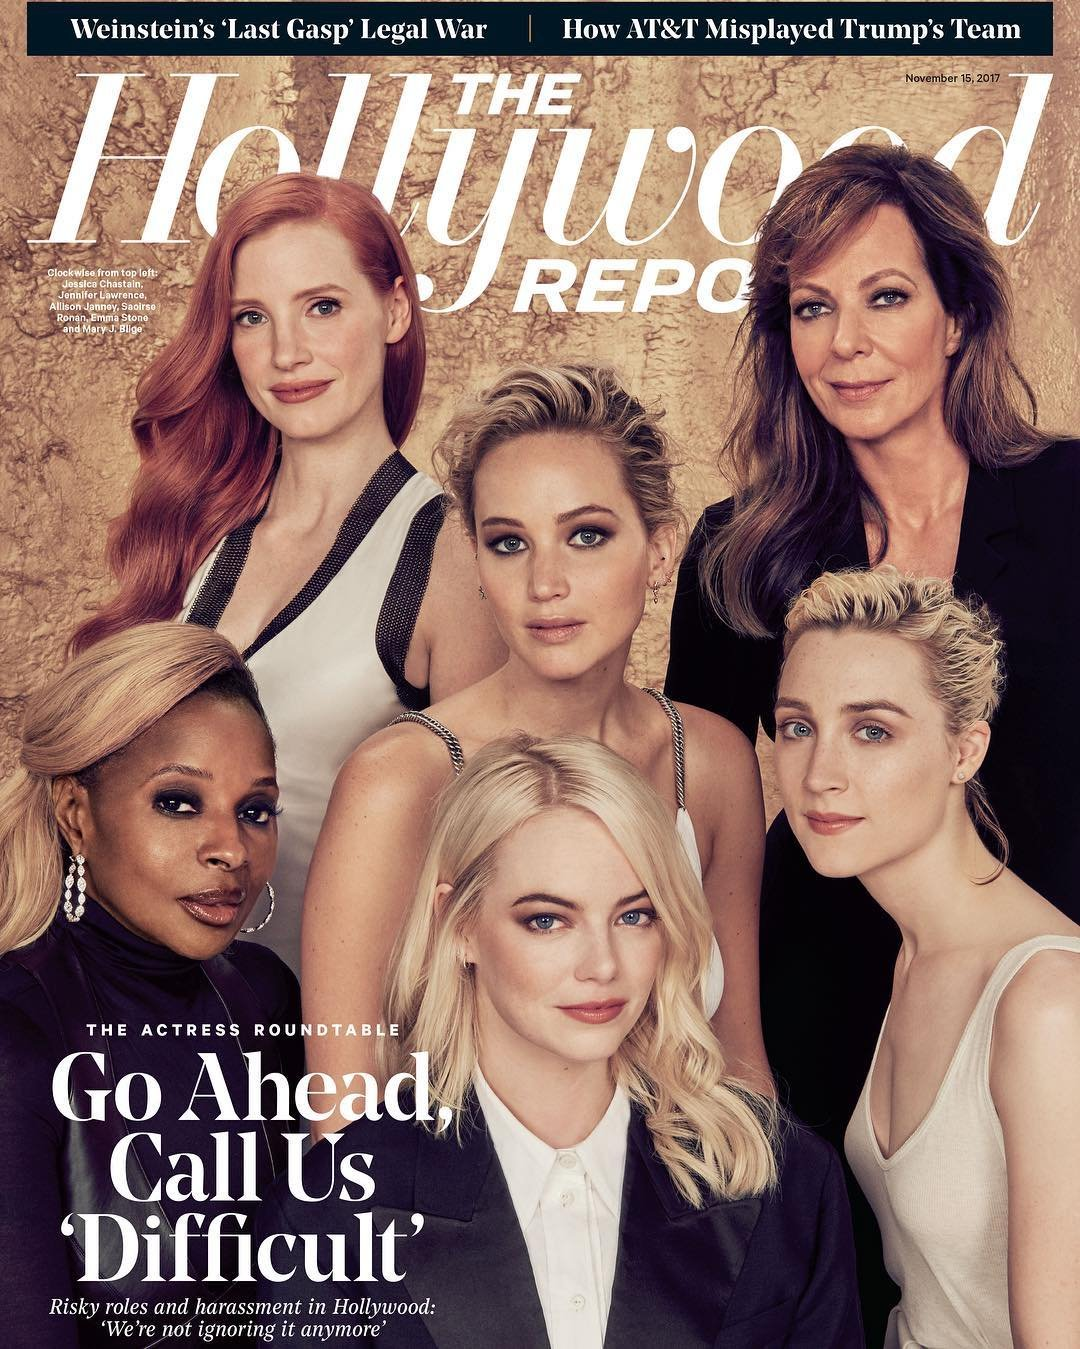 Download The Hollywood Reporter Magazine (November 15, 2017) The Actress Roundtable Issue ebook